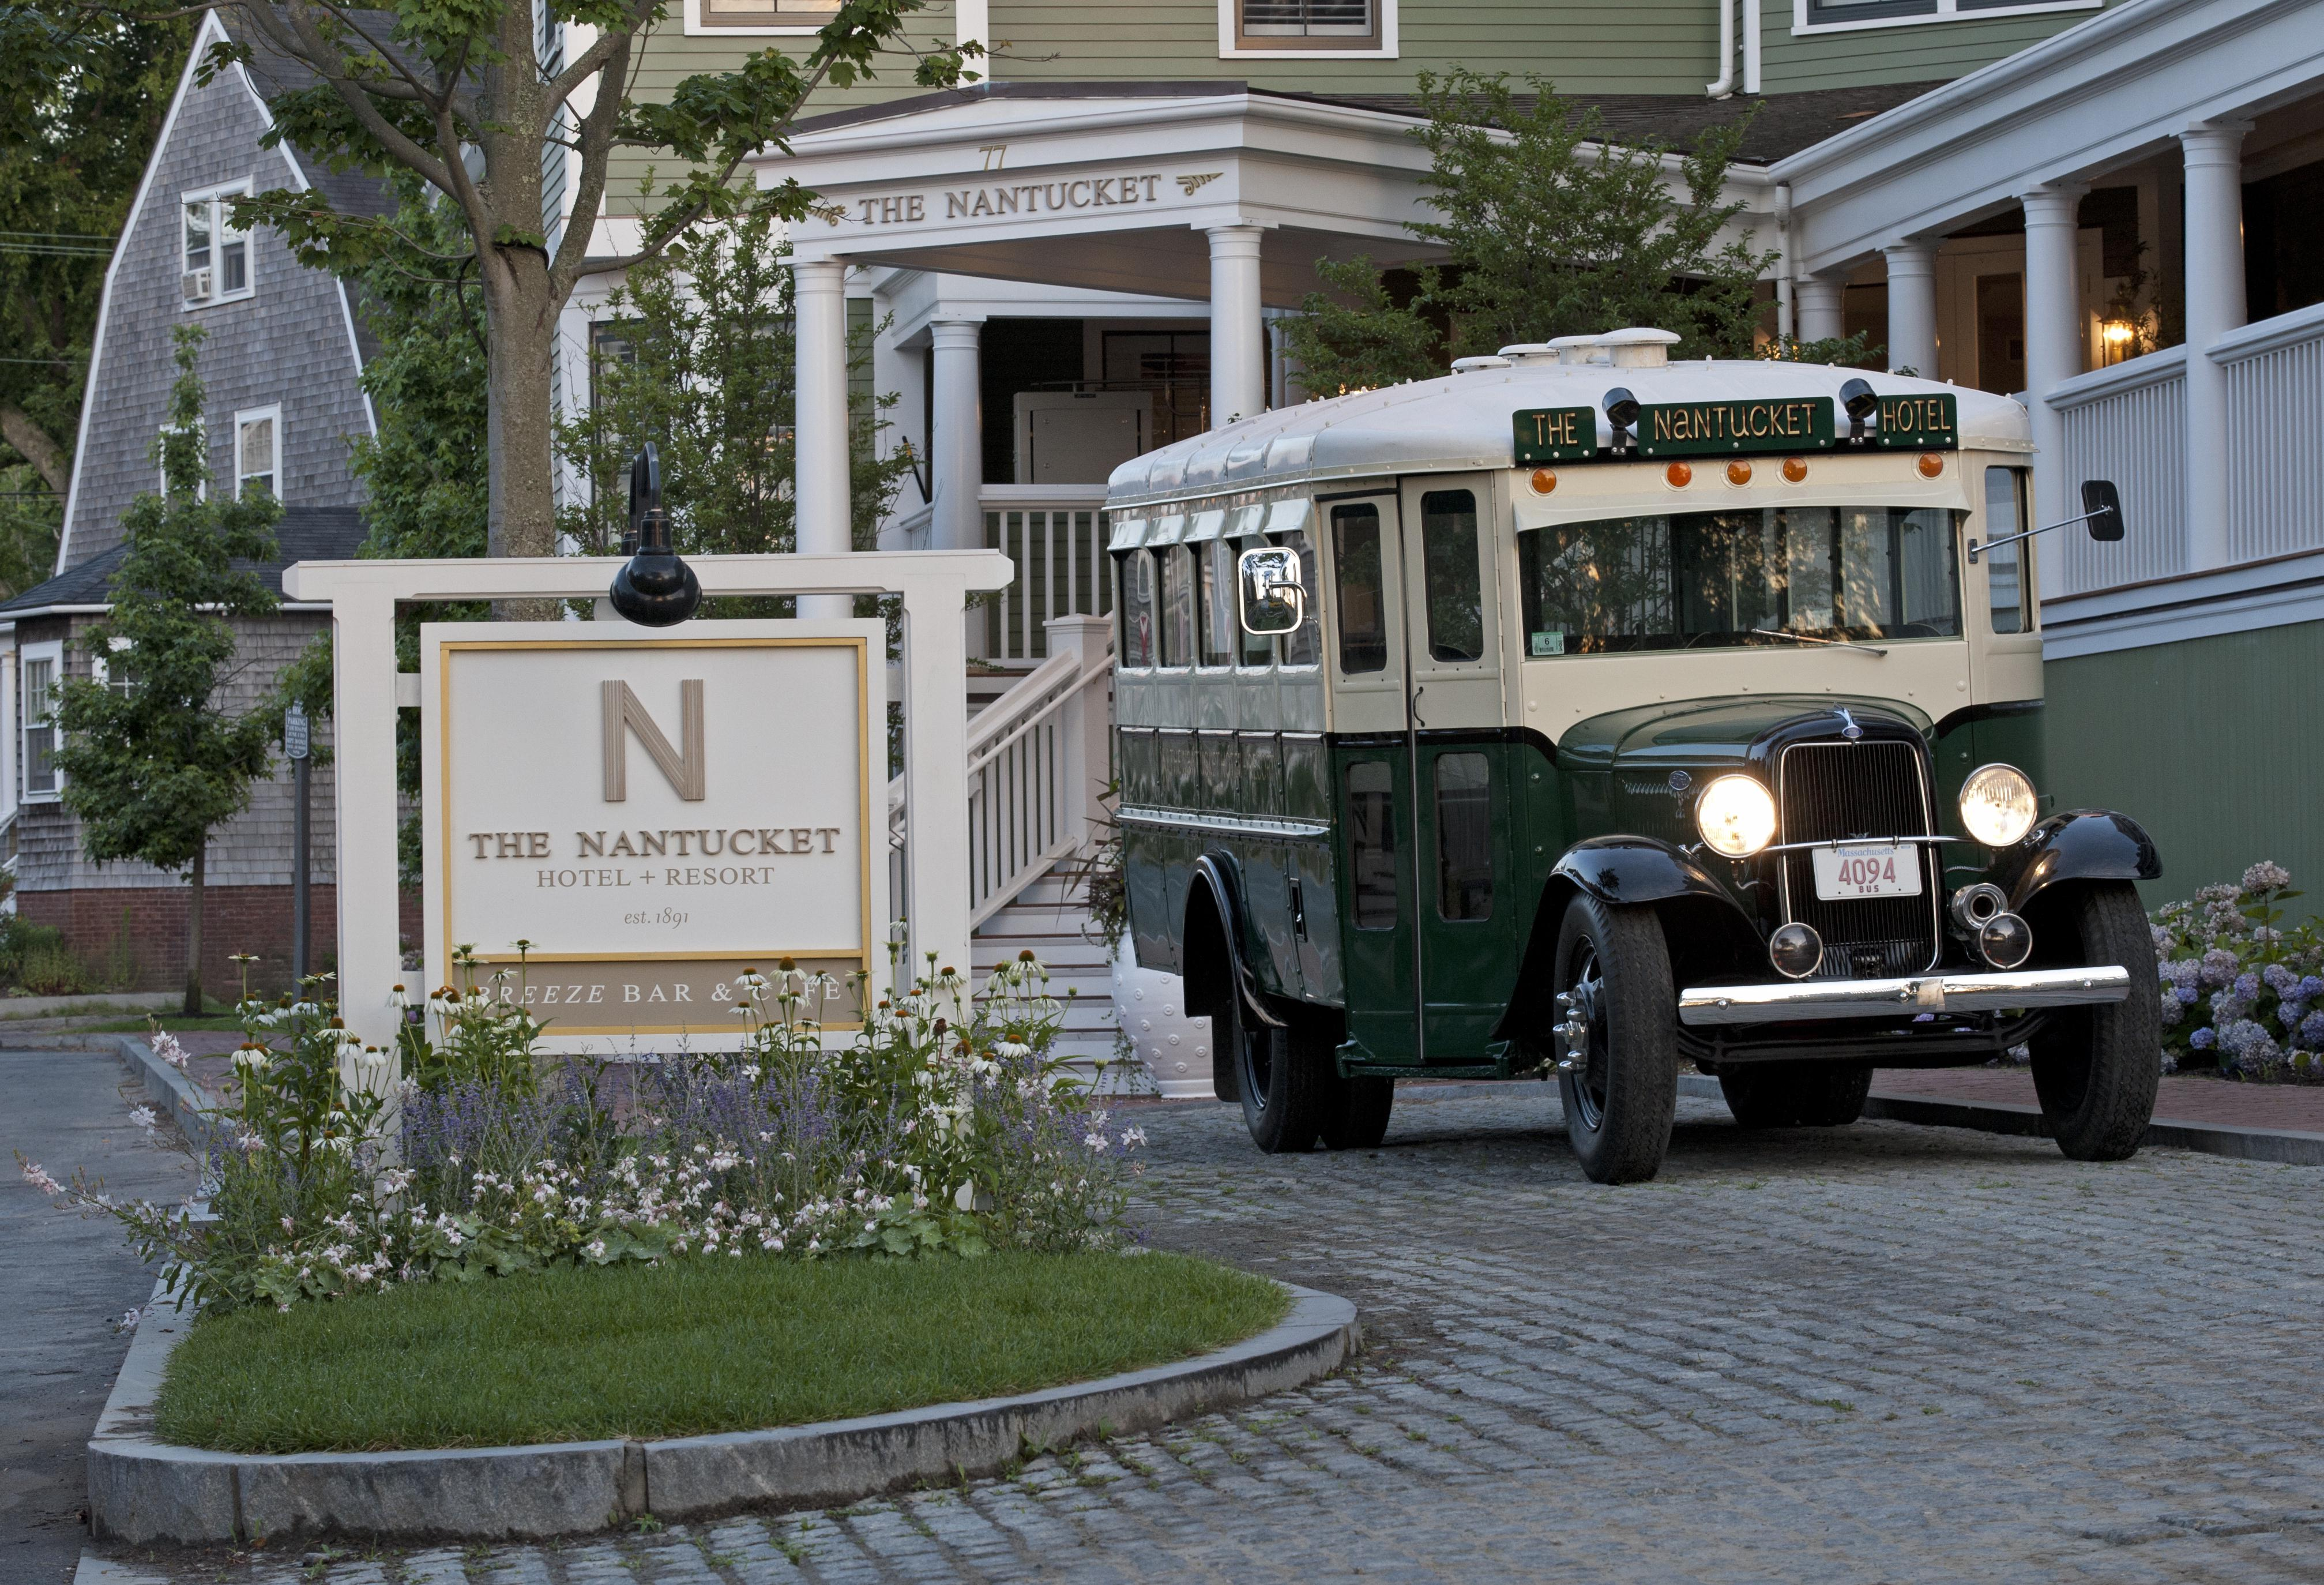 The Nantucket Hotel and Resort entrance and shuttle bus